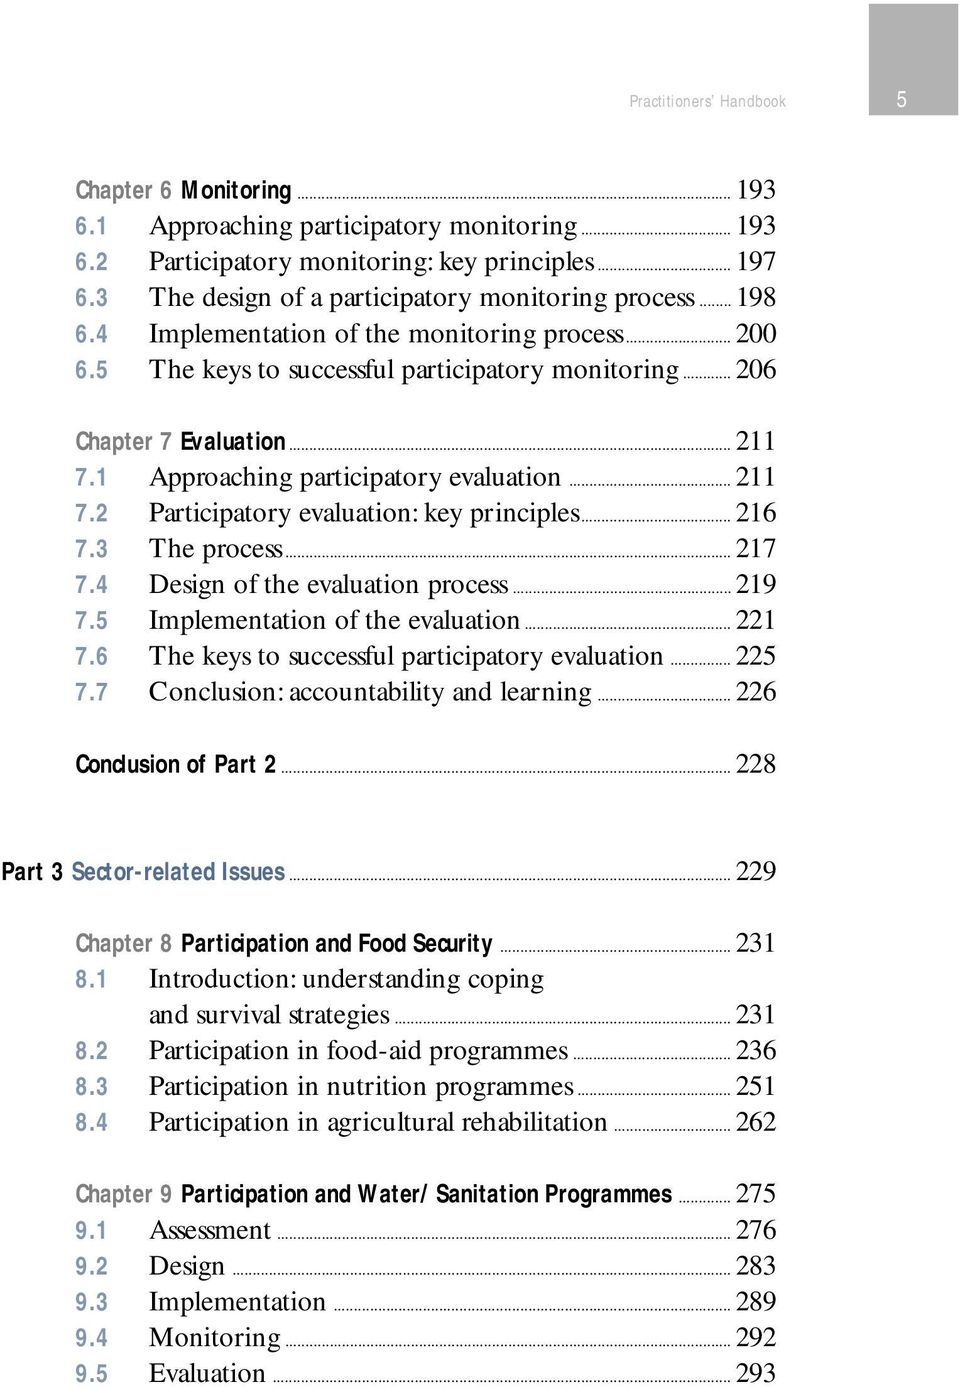 1 Approaching participatory evaluation... 211 7.2 Participatory evaluation: key principles... 216 7.3 The process... 217 7.4 Design of the evaluation process... 219 7.